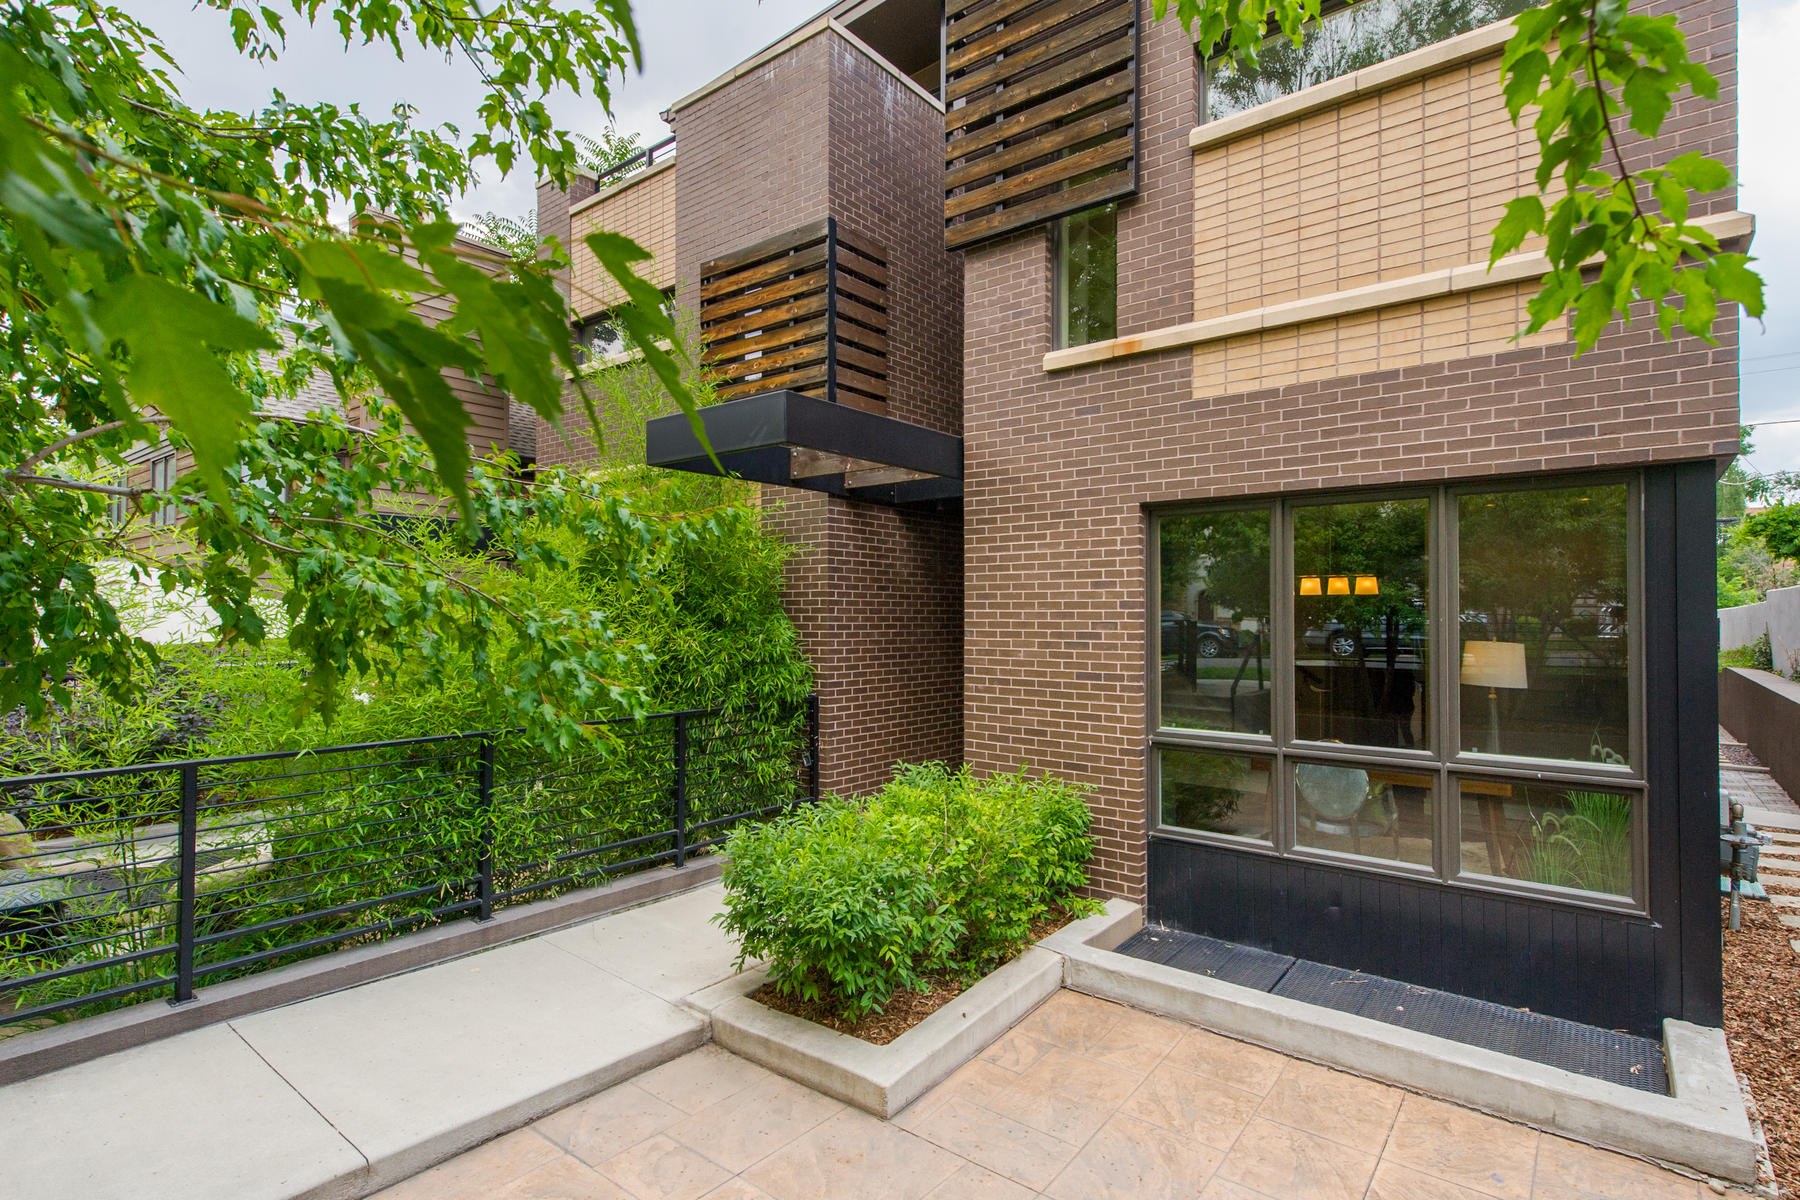 Single Family Home for Active at Easy. Modern. Fresh. Gorgeous Cherry Creek North Townhome 463 Detroit Street Denver, Colorado 80206 United States